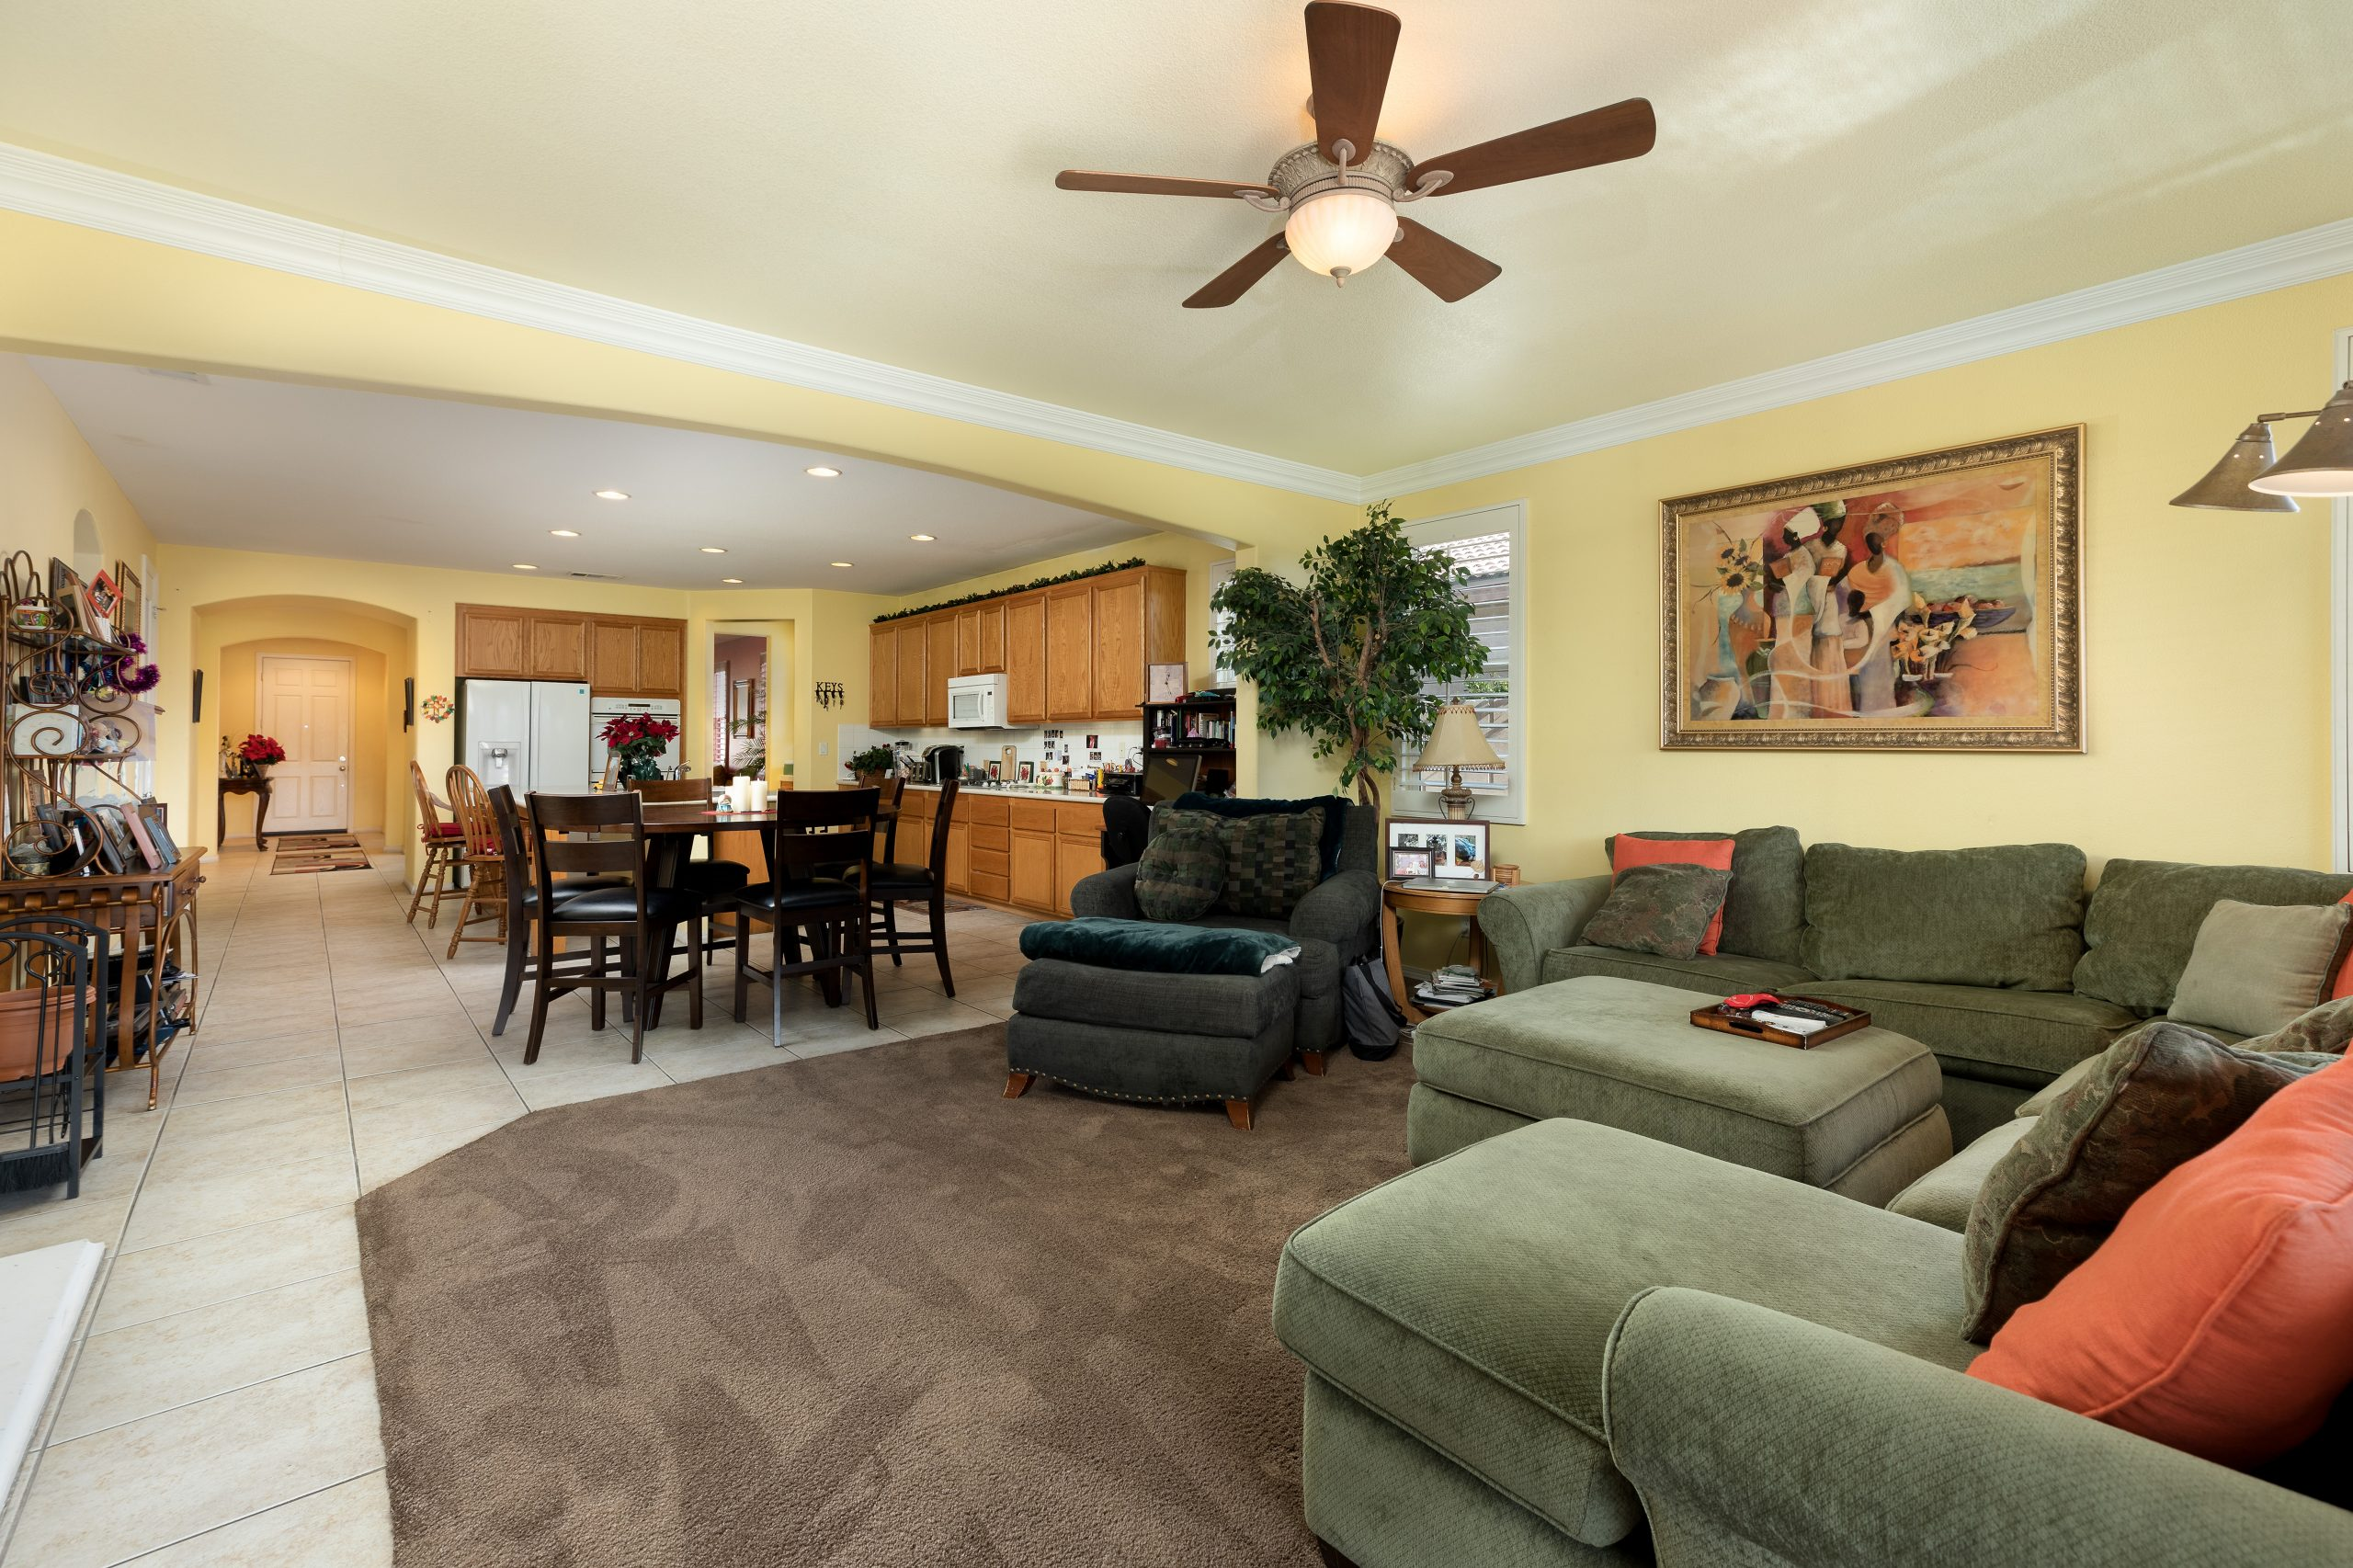 3364 Tournament Drive Palmdale CA 93551 Family Room and Kitchen